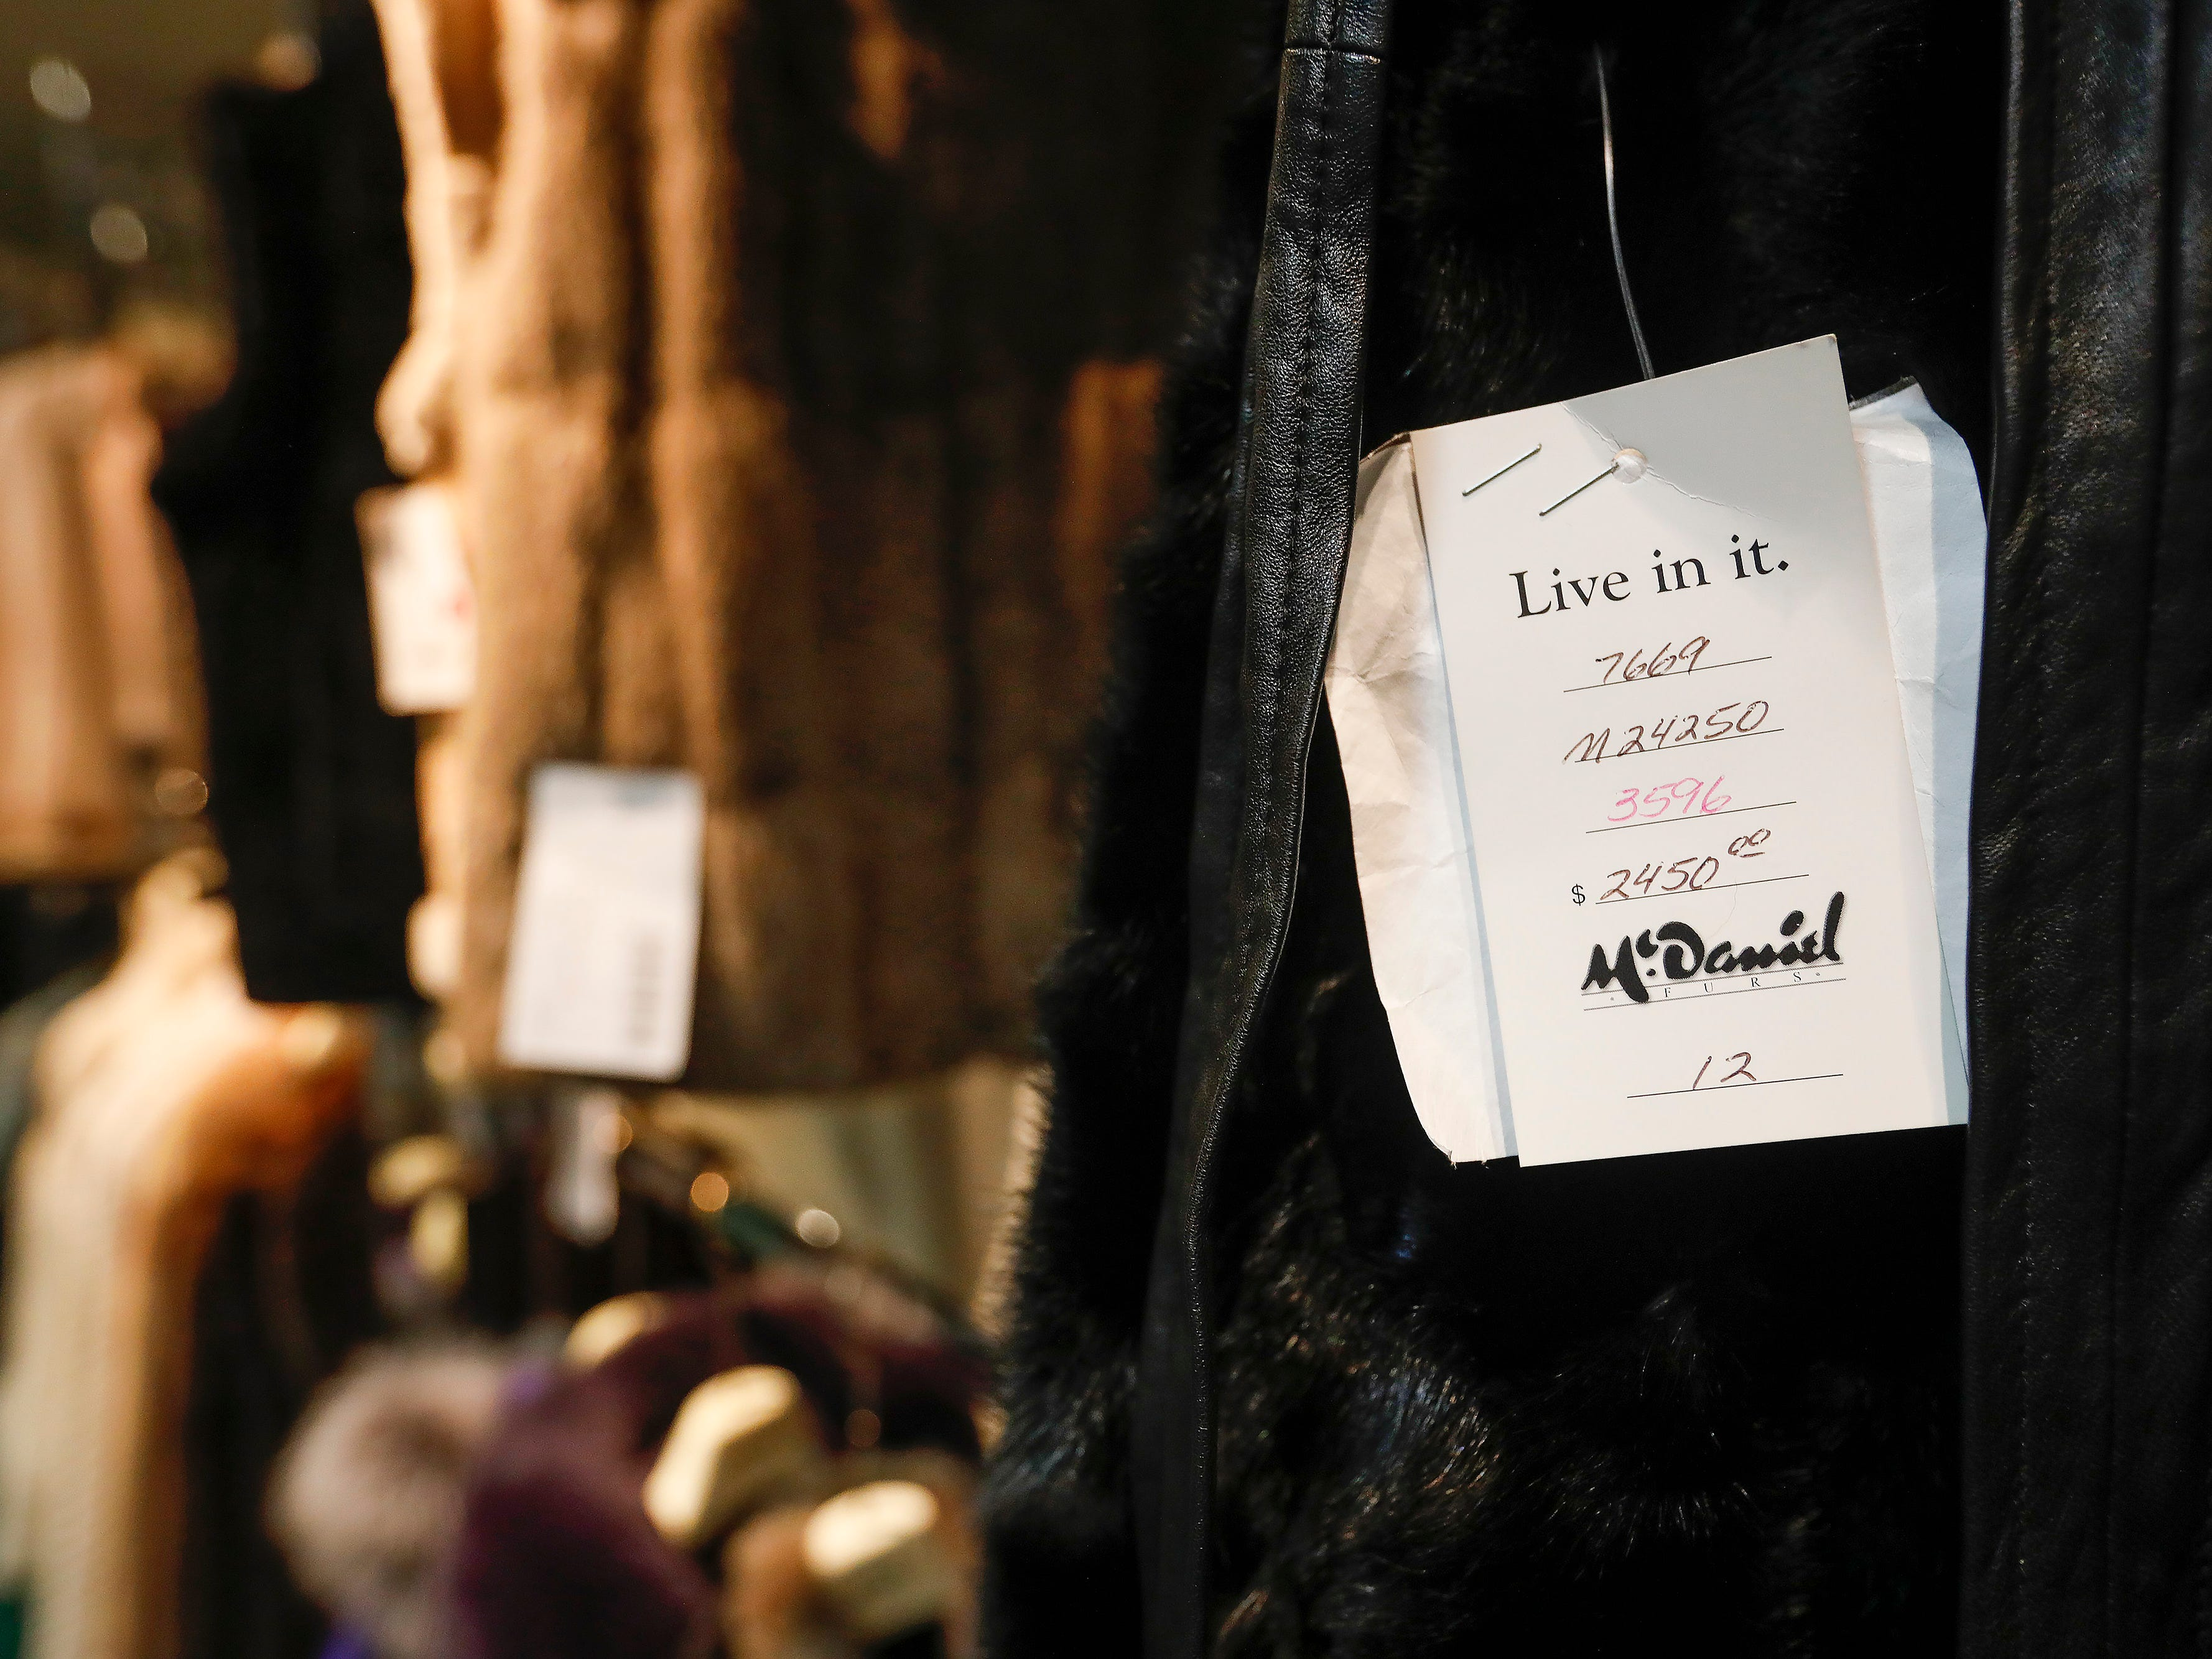 A price tag on the sleeve of a coat for sale at McDaniel Furs, located at 901 S. Glenstone Ave.